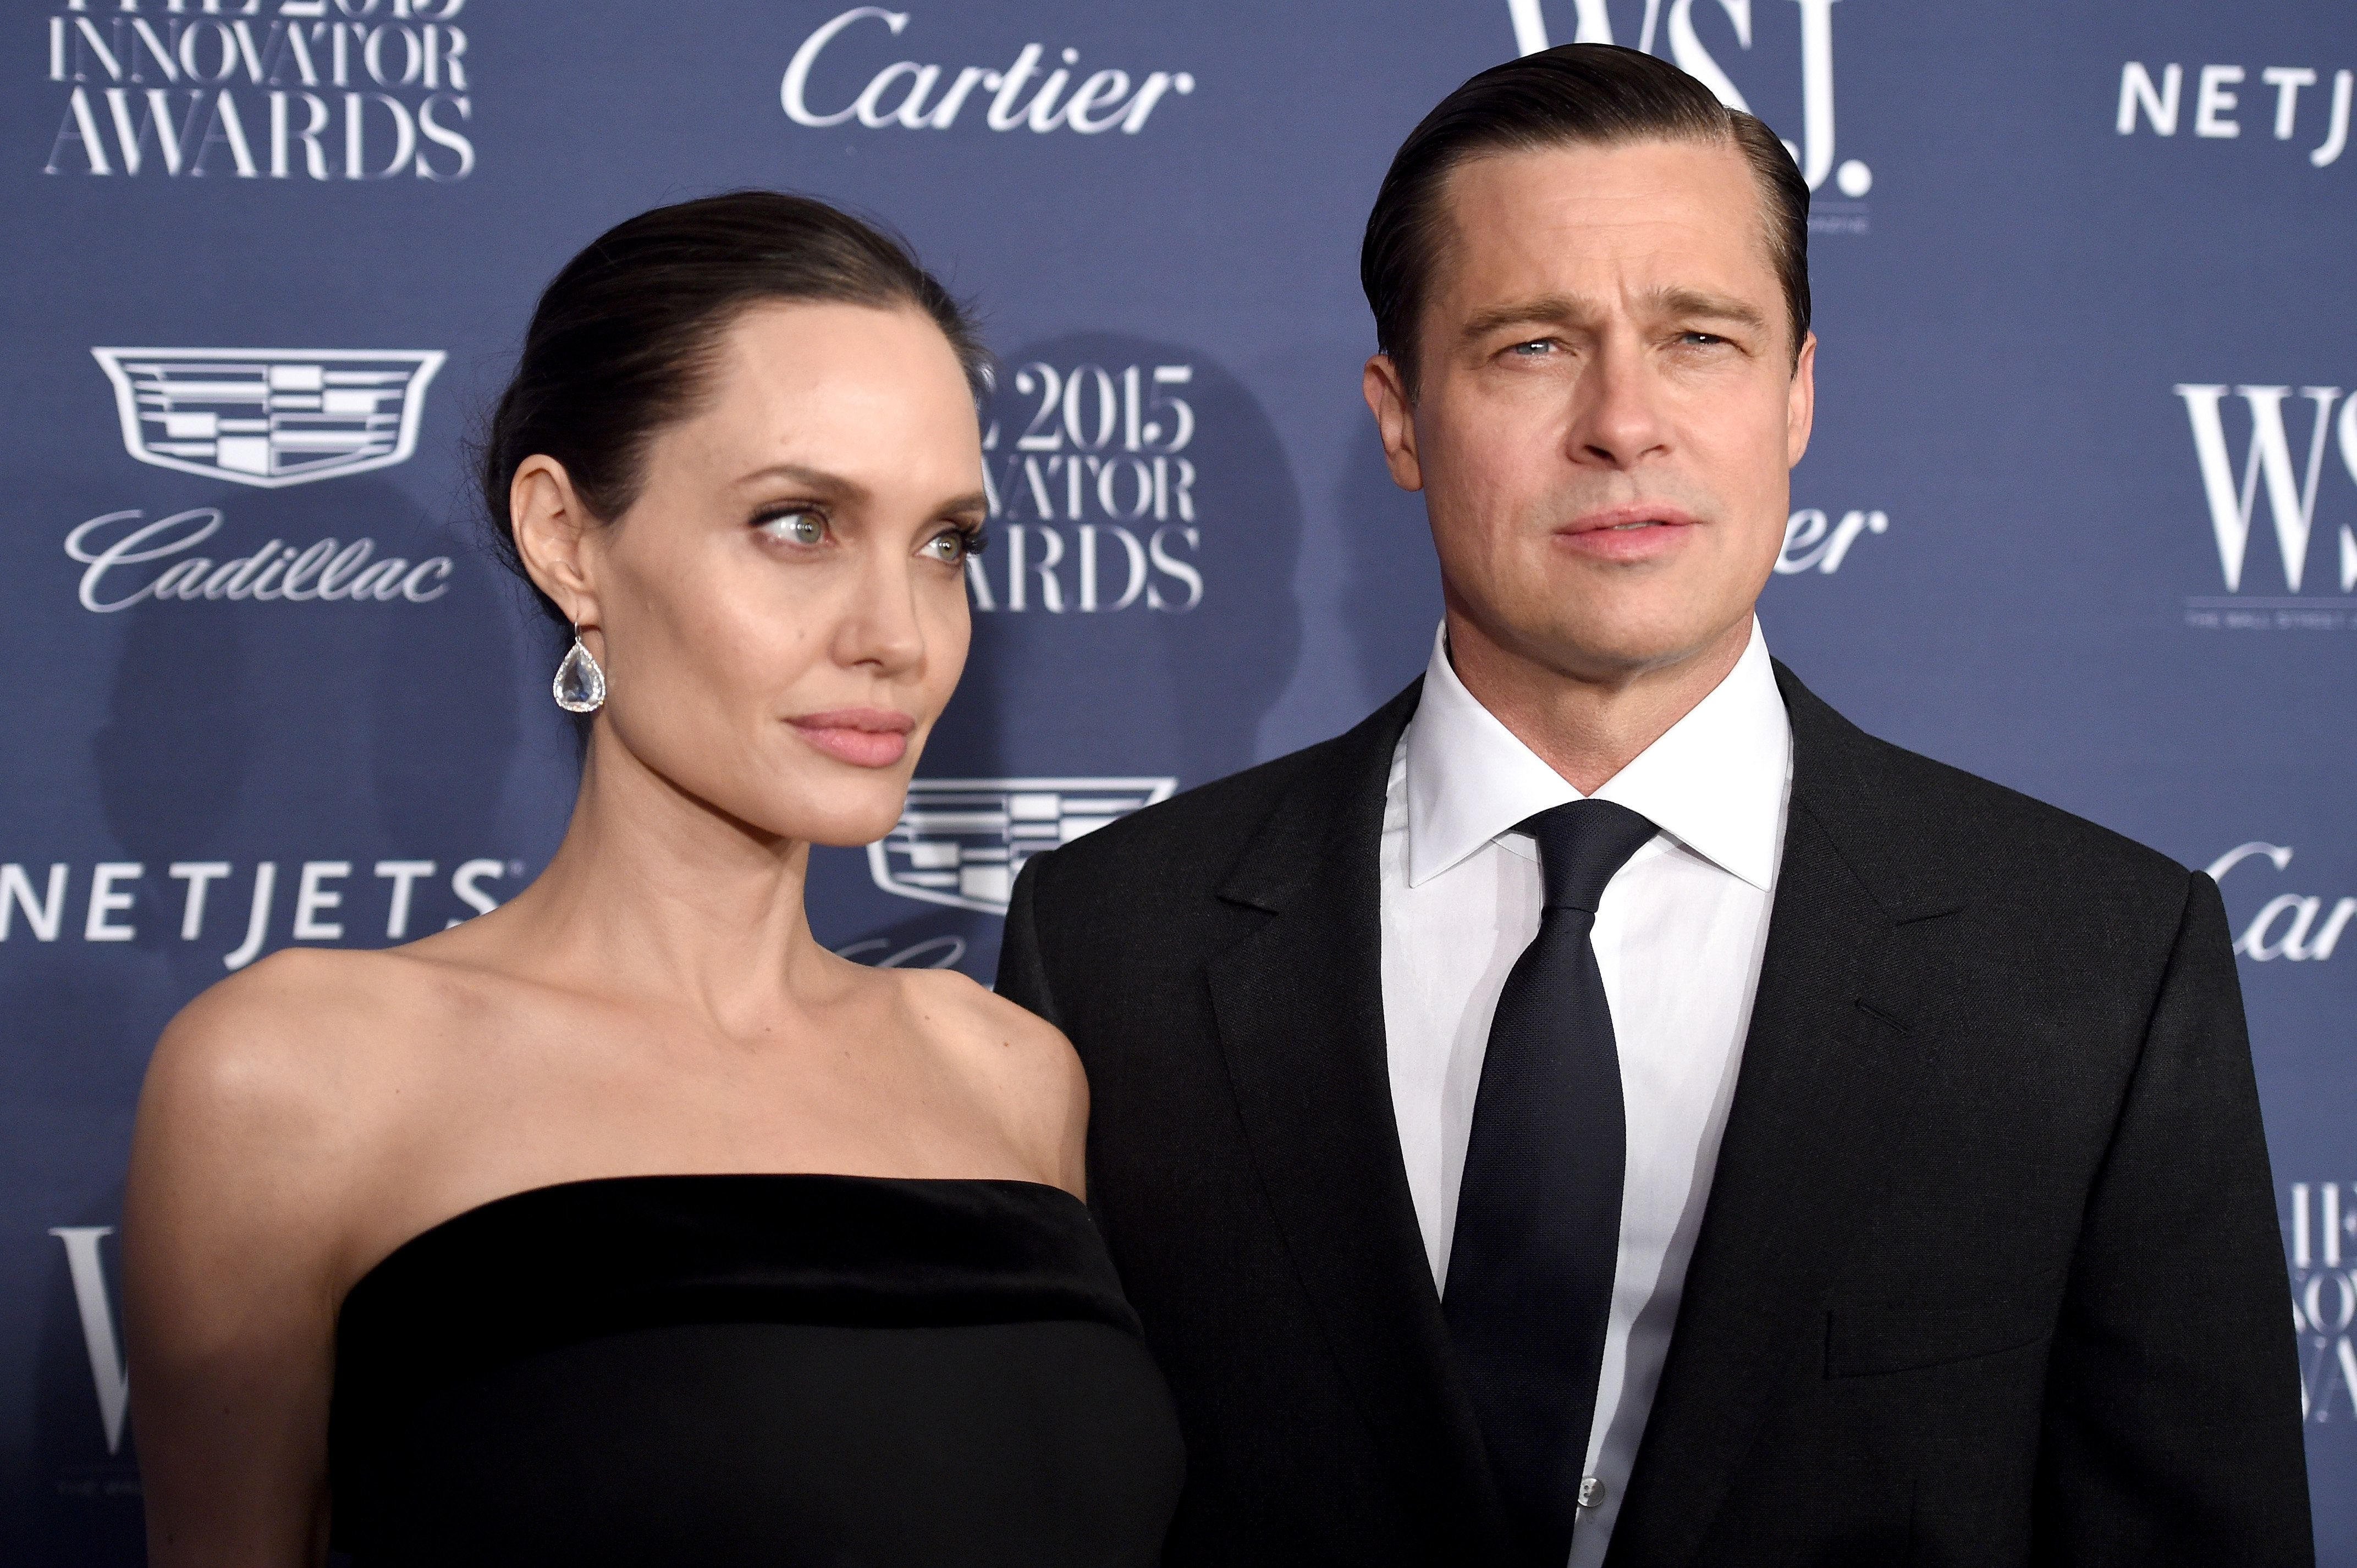 NEW YORK, NY - NOVEMBER 04:  2015 Entertainment Innovator Angelina Jolie Pitt (L) and Brad Pitt attend the WSJ. Magazine 2015 Innovator Awards at the Museum of Modern Art on November 4, 2015 in New York City.  (Photo by Dimitrios Kambouris/Getty Images for WSJ. Magazine 2015 Innovator Awards)